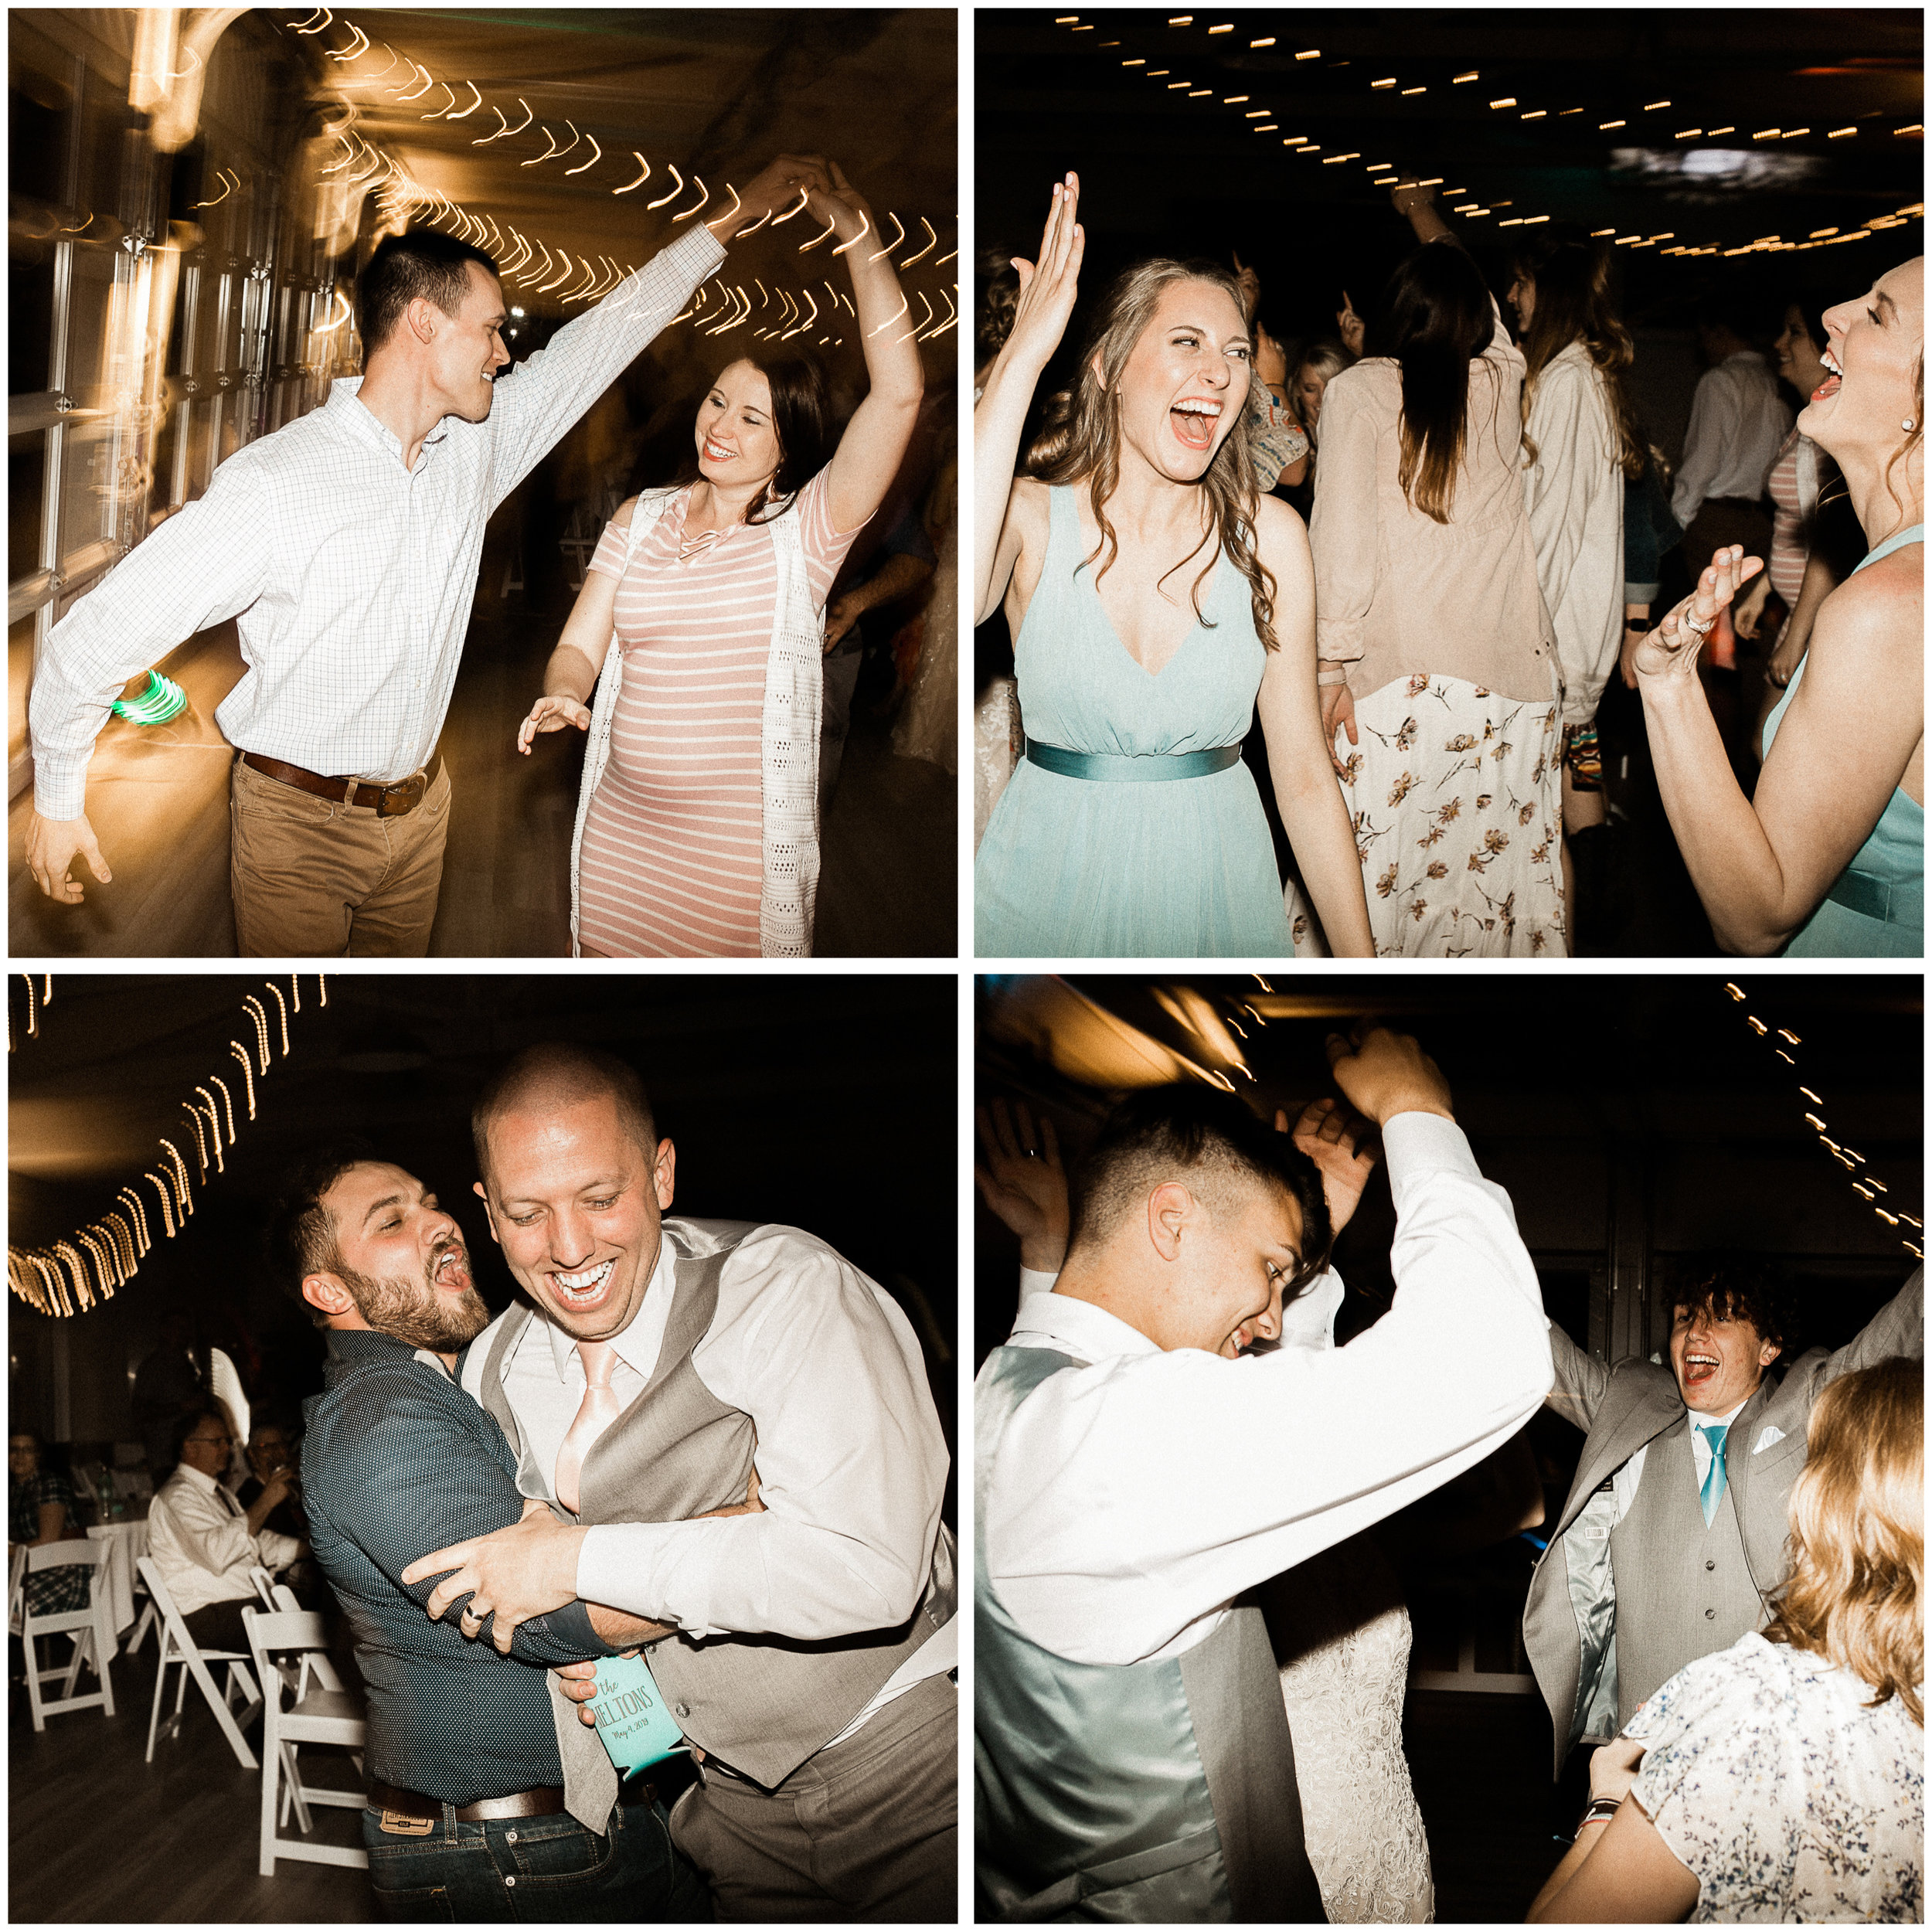 greenhouse-zao-island-wedding-reception-dancing-pictures-party.jpg